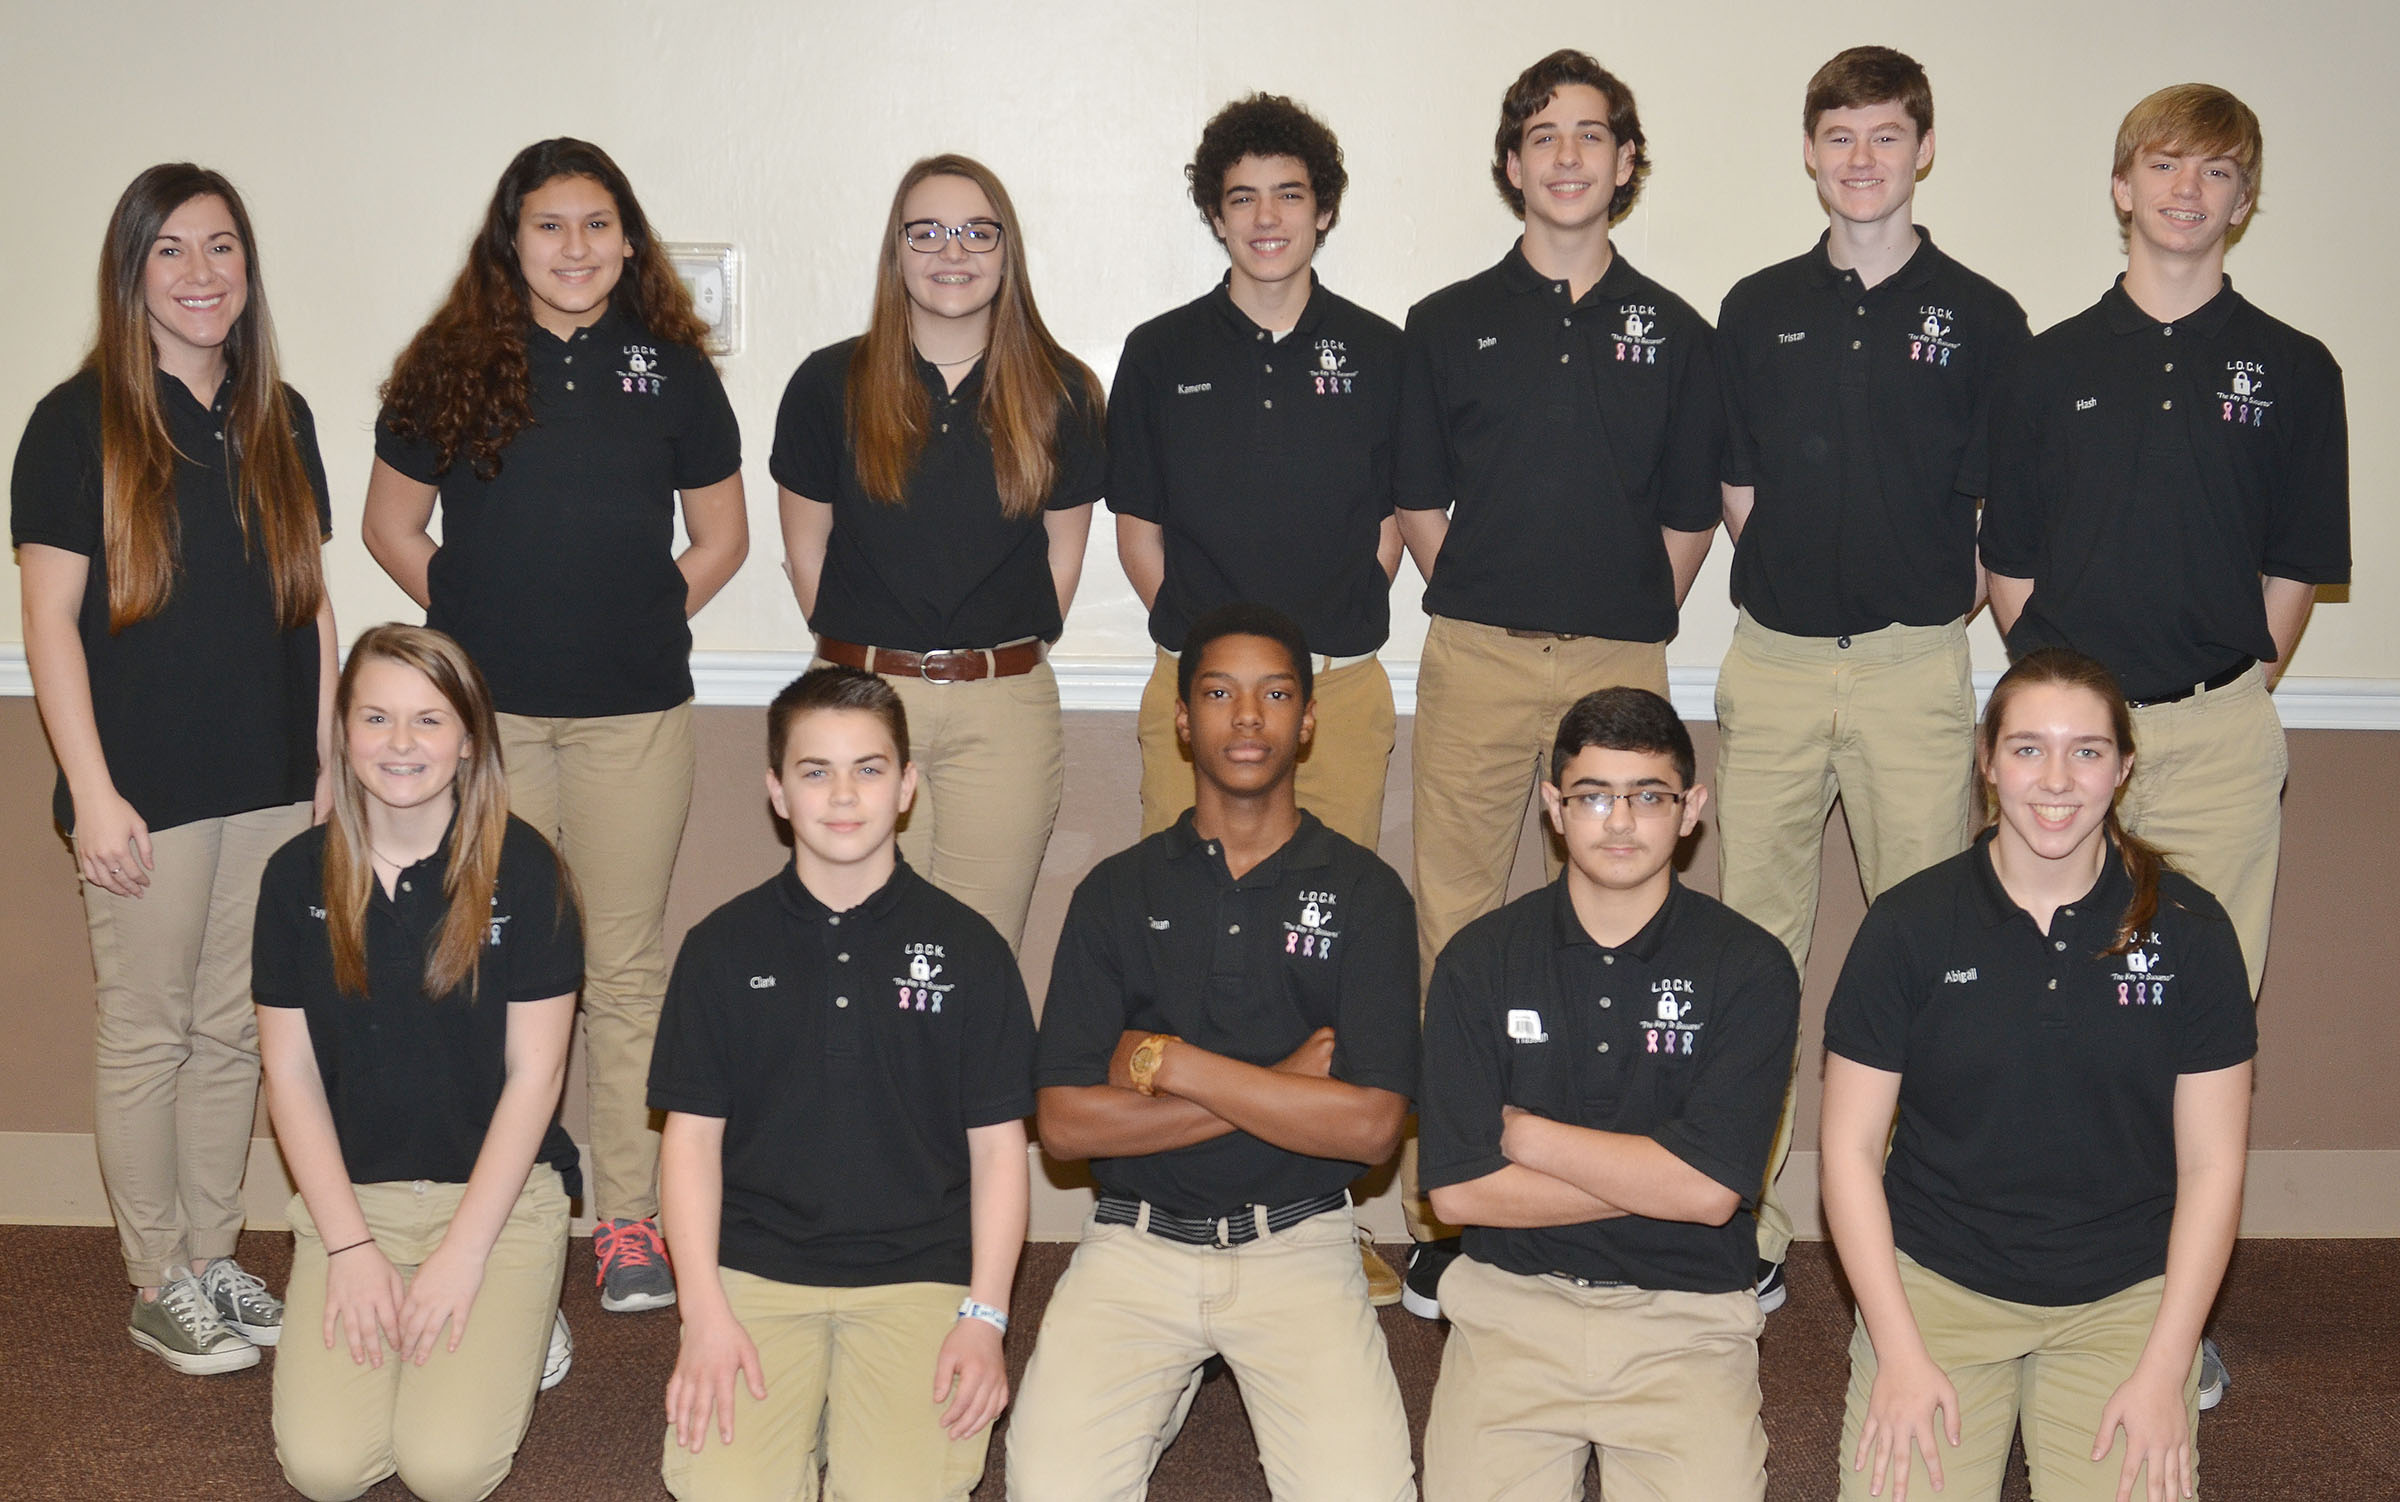 CMS eighth-graders participating in this year's CU leadership program are, from left, front, Taylor Knight, Clark Kidwell, Zaquan Cowan, Hassan Alabusalim and Abi Wiedewitsch. Back, advisor Courtney Mills, Ana Clara Moura, Kenzi Forbis, Kameron Smith, John Orberson, Tristin Faulkner and Arren Hash.